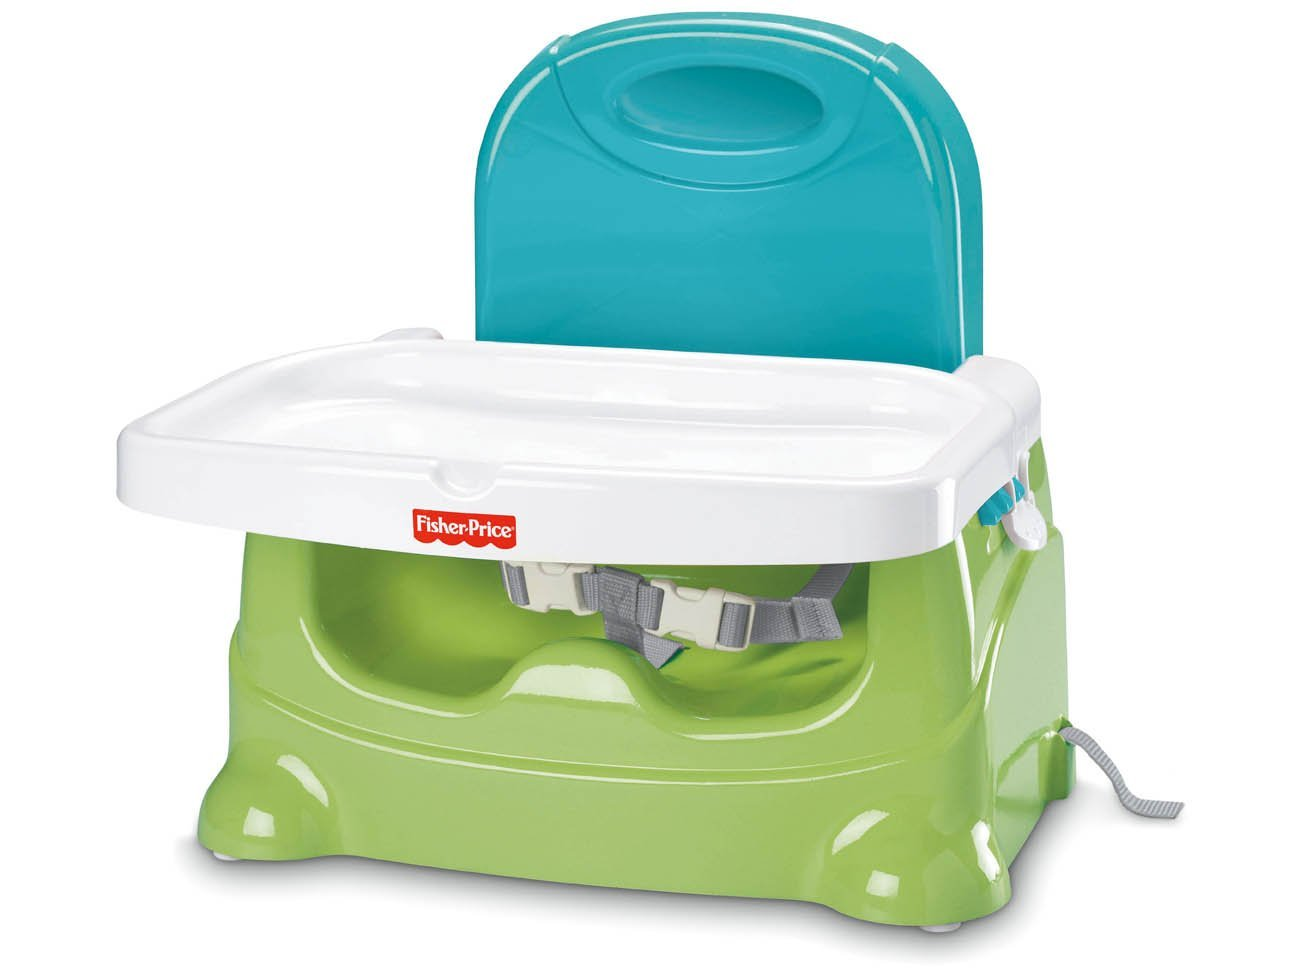 Rent Kitchen Booster Seat  Toronto Vancouver Victoria